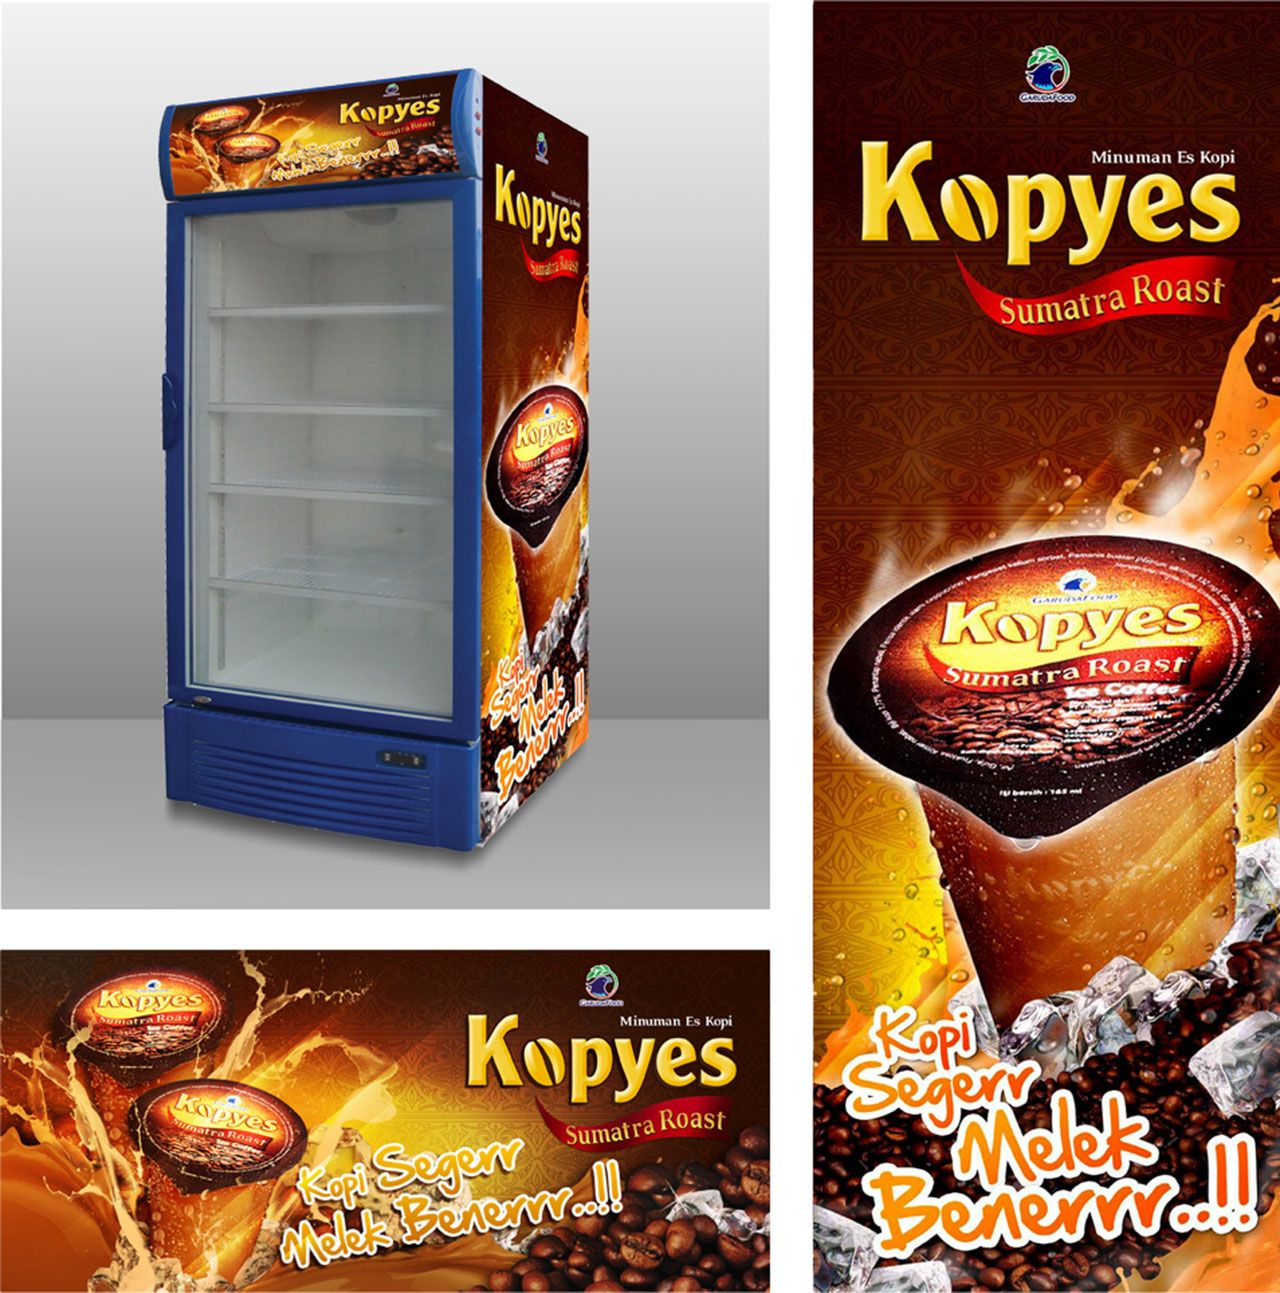 Kopyes made from Indonesian Traditional Sumatra's Coffee